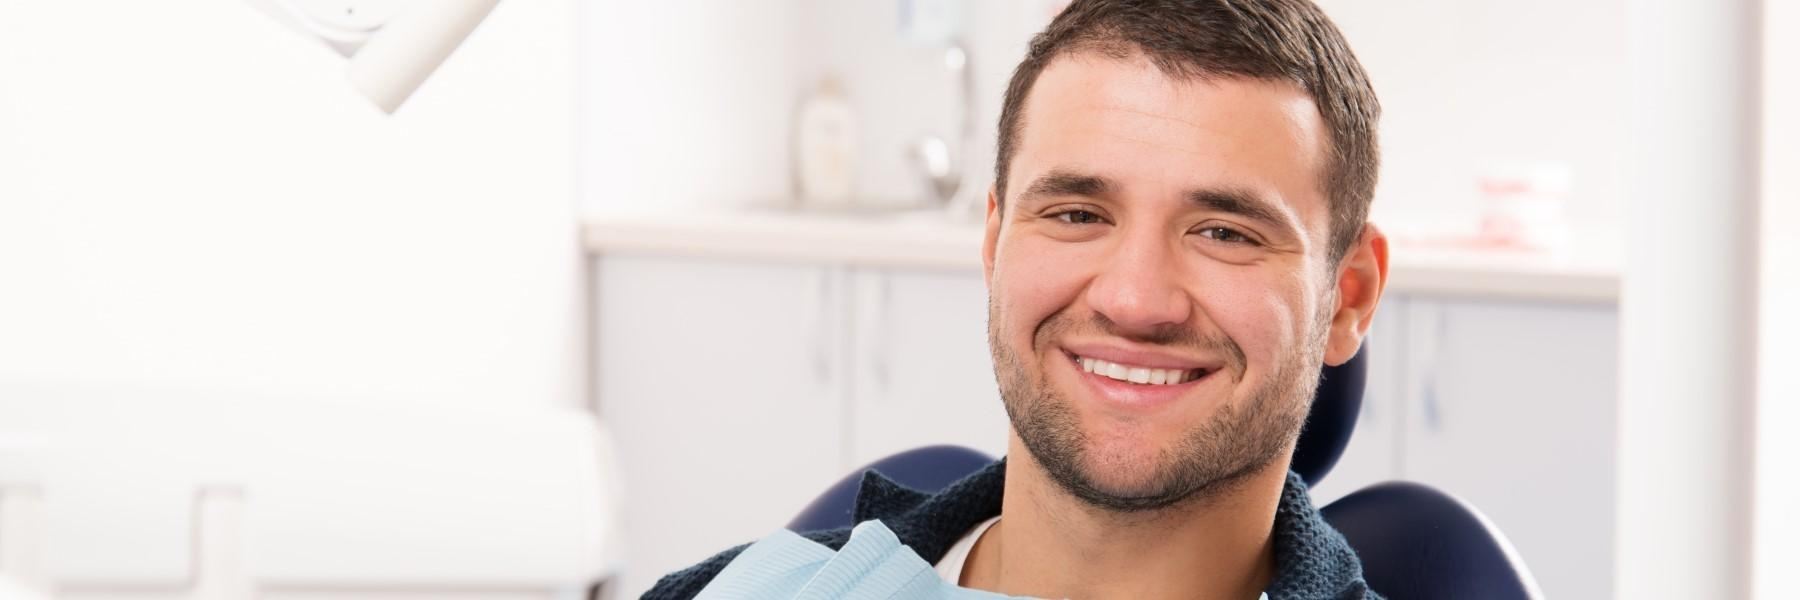 man smiling in the dental chair wearing a bib